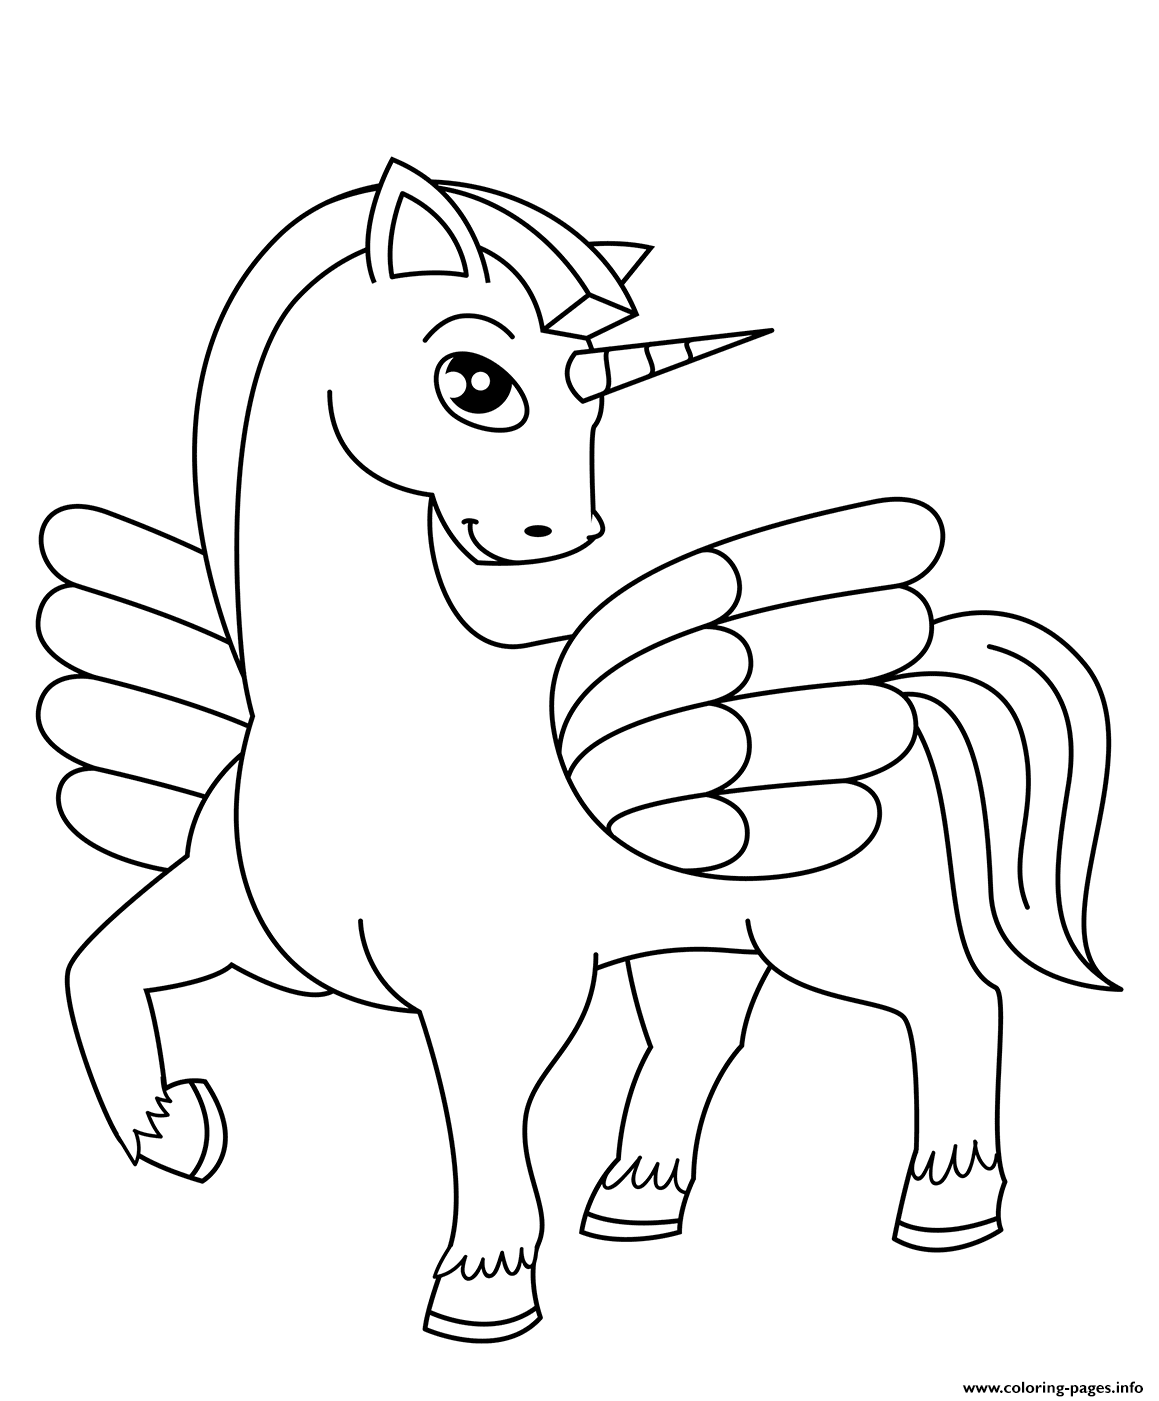 cute easy unicorn coloring pages pin by noa cohen on unicorns are awesome unicorn unicorn coloring easy cute pages